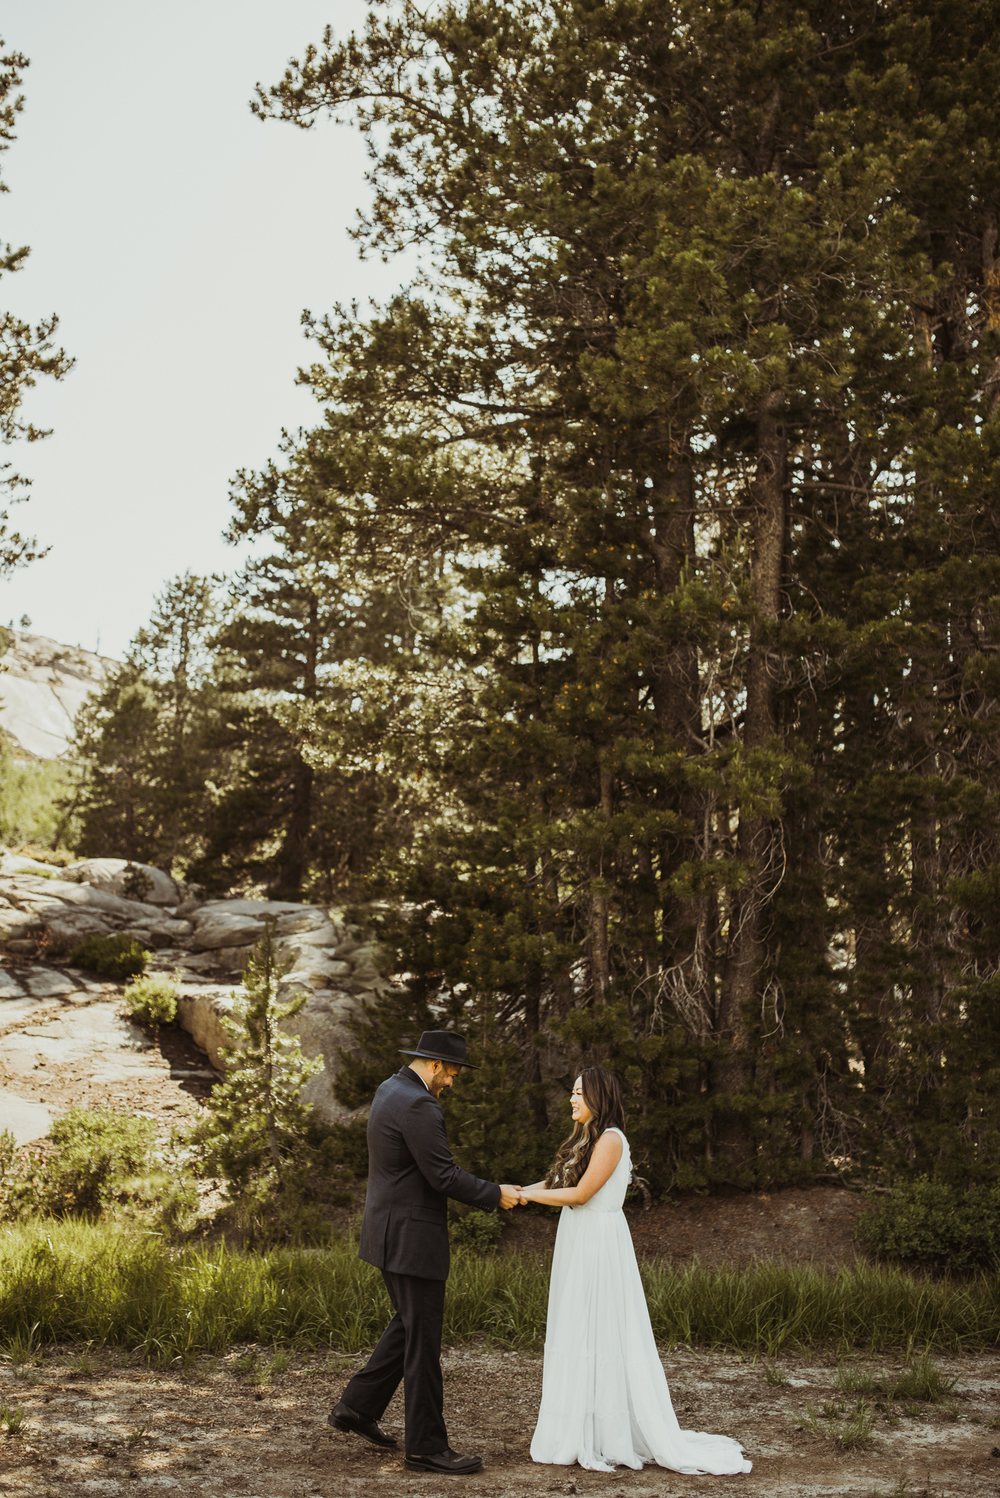 ©Isaiah & Taylor Photography -The Hideout Wedding, Kirkwood California, Lake Tahoe Wedding Photographer-73.jpg